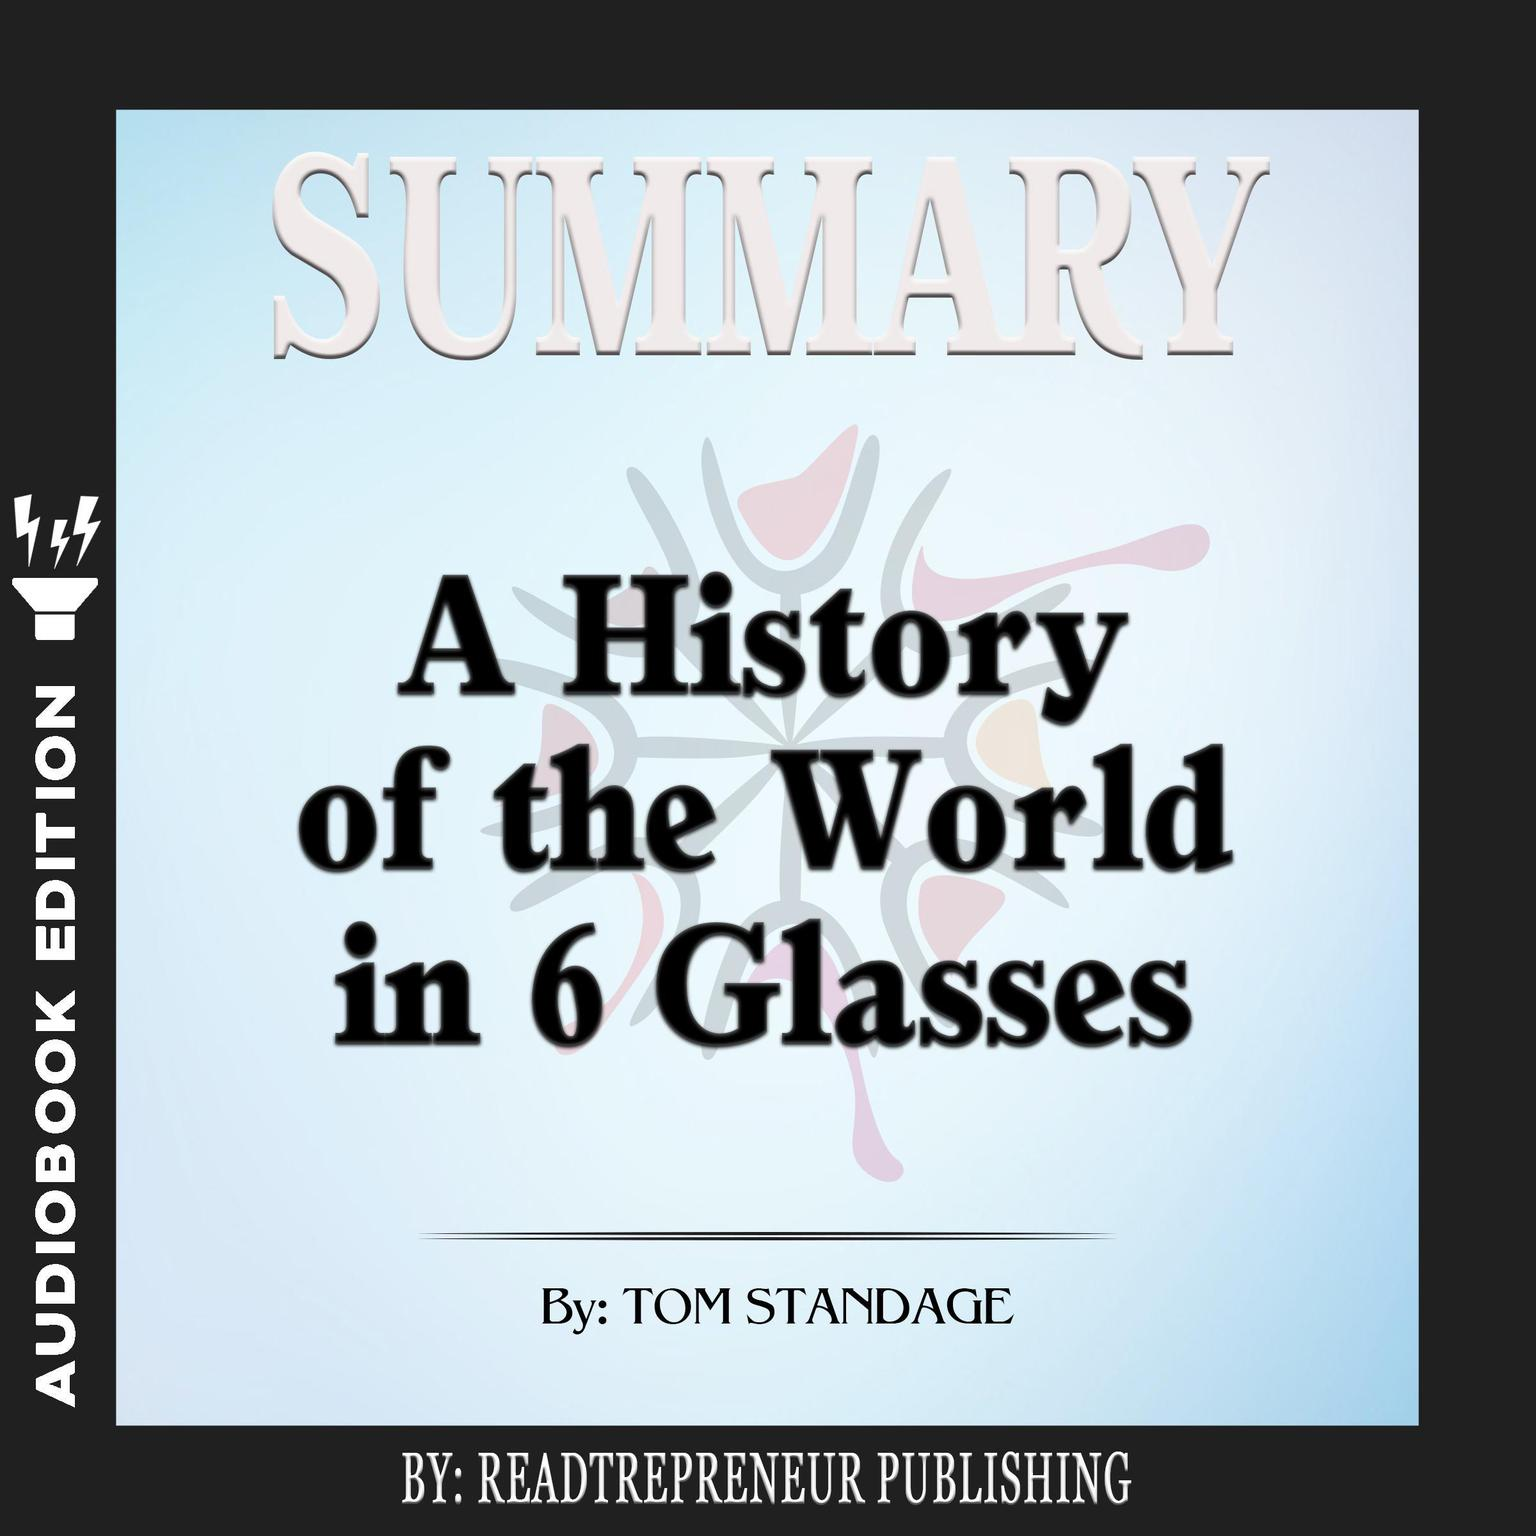 Printable Summary of A History of the World in 6 Glasses by Tom Standage Audiobook Cover Art